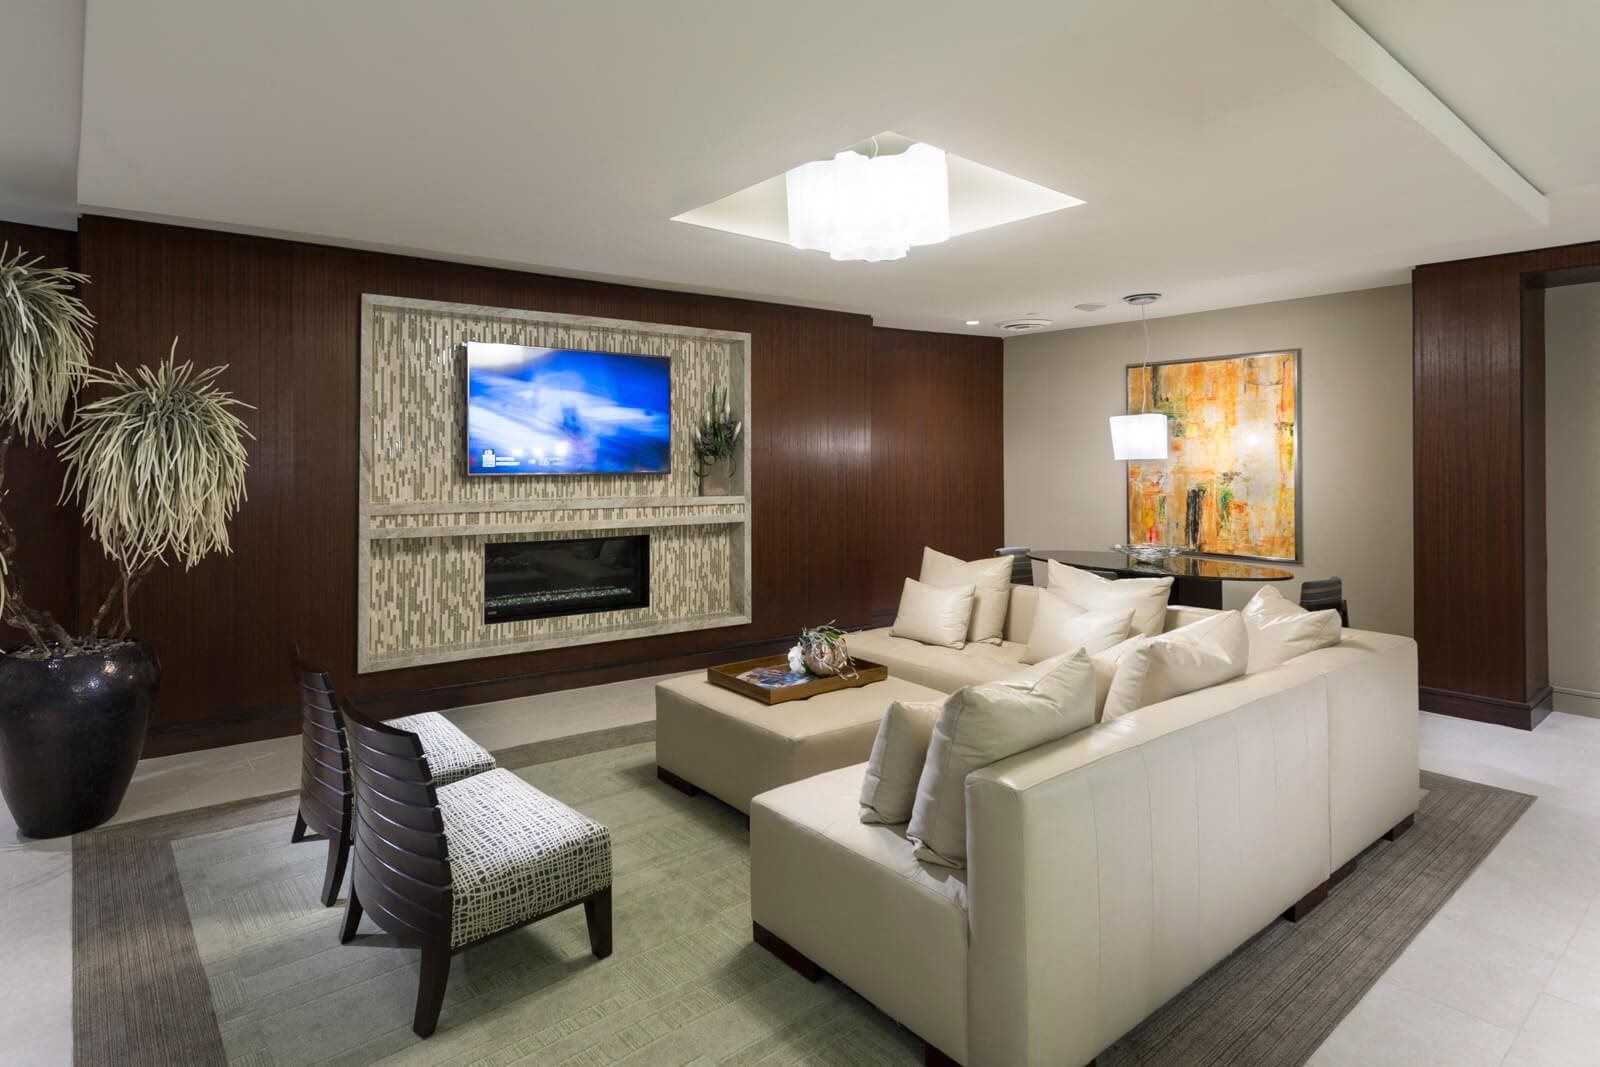 Five-Star Resort Lifestyle at Windsor at Cambridge Park, 02140, MA